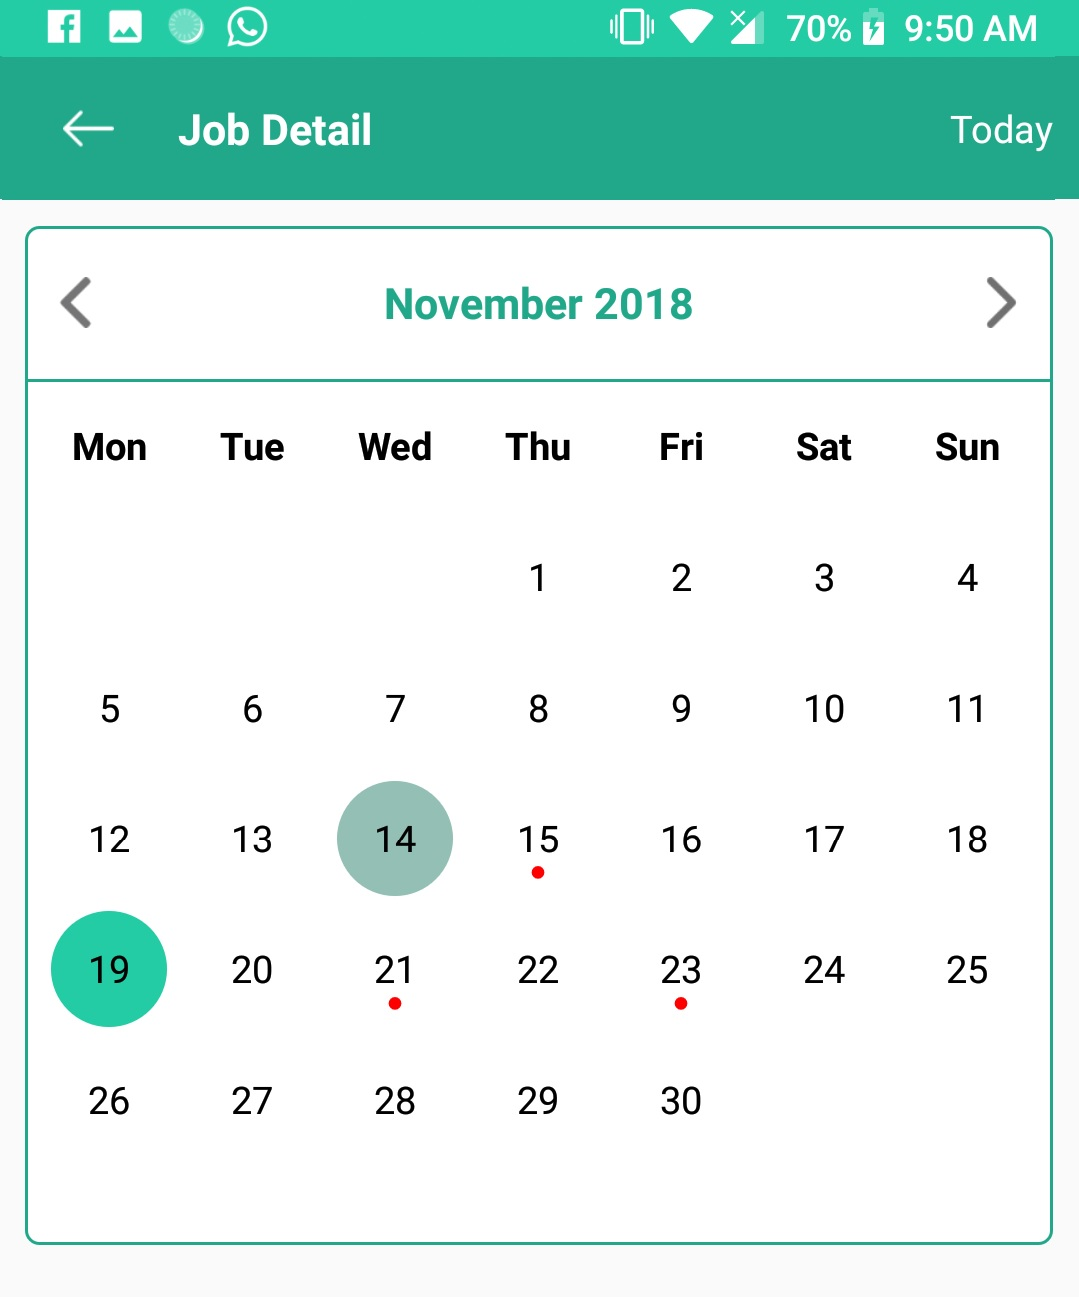 ANDROID LIBRARY (Android Open Source Code) : Custom Calendar With